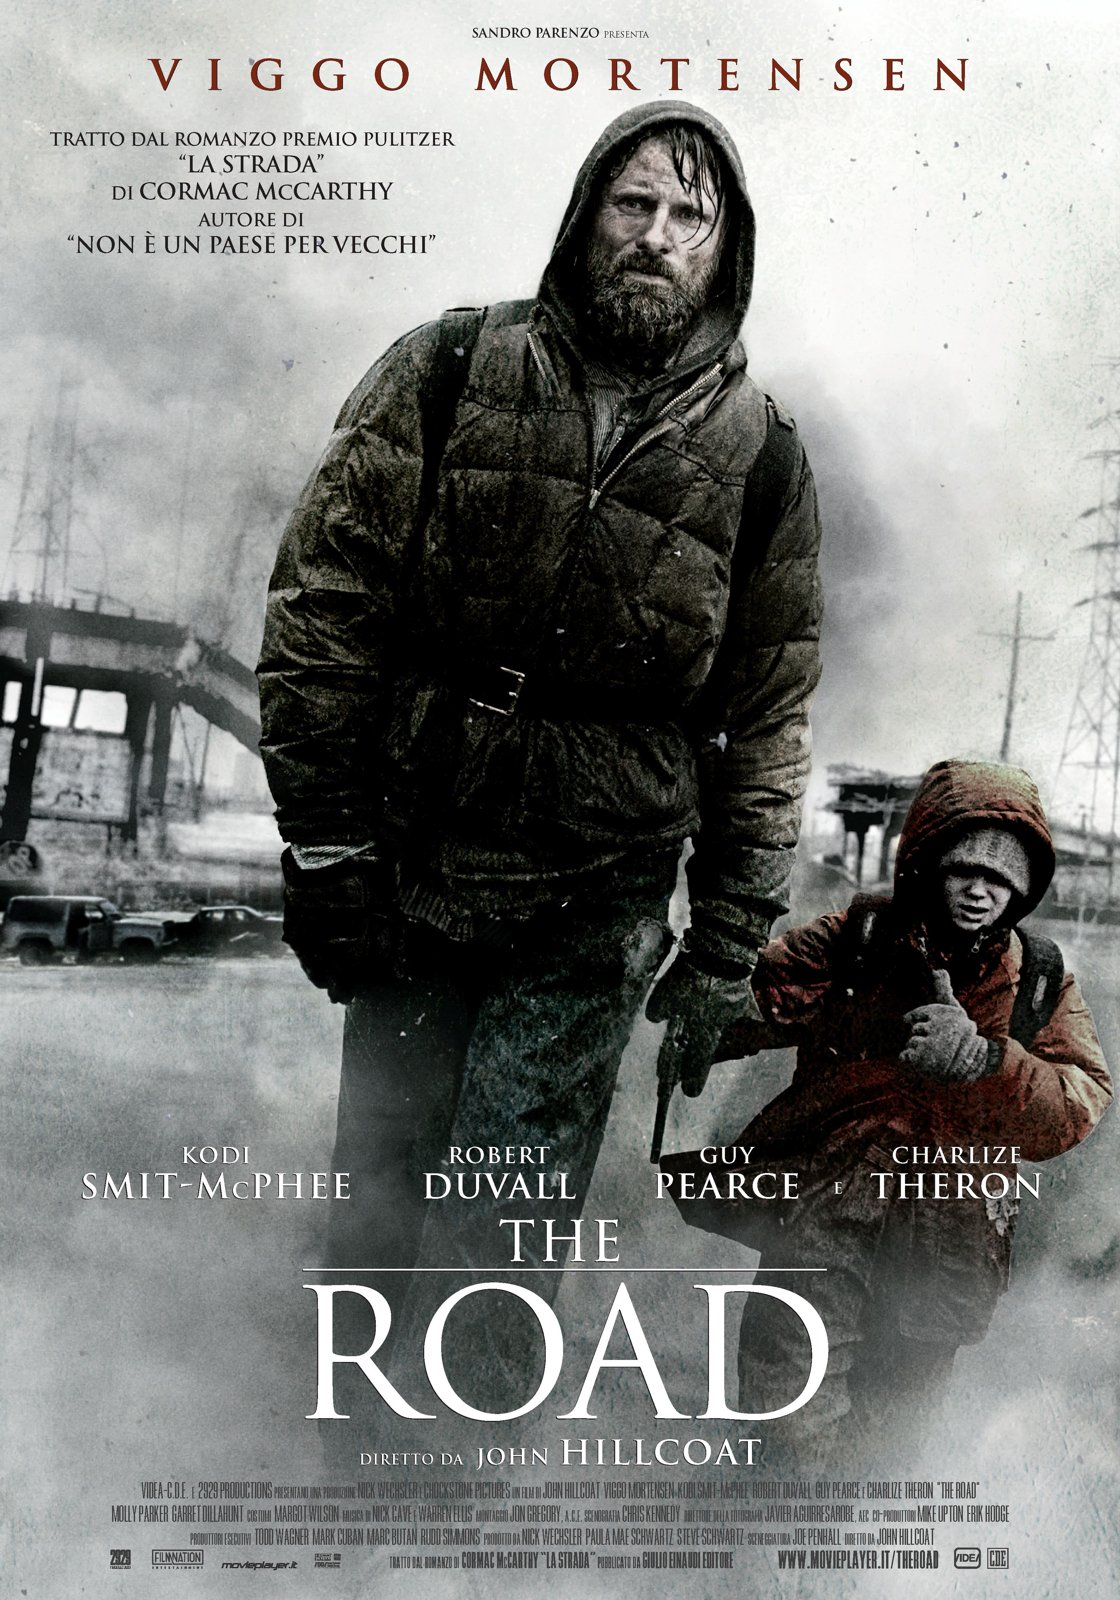 http://3.bp.blogspot.com/_95CwhVxJULc/TSYyUD4ewGI/AAAAAAAAHek/8RaOv0wzq7A/s1600/The_Road_mejores_programas_tv_peliculas_movie_Series_2010_tierra_freak_tierrafreak.com.ar.jpg